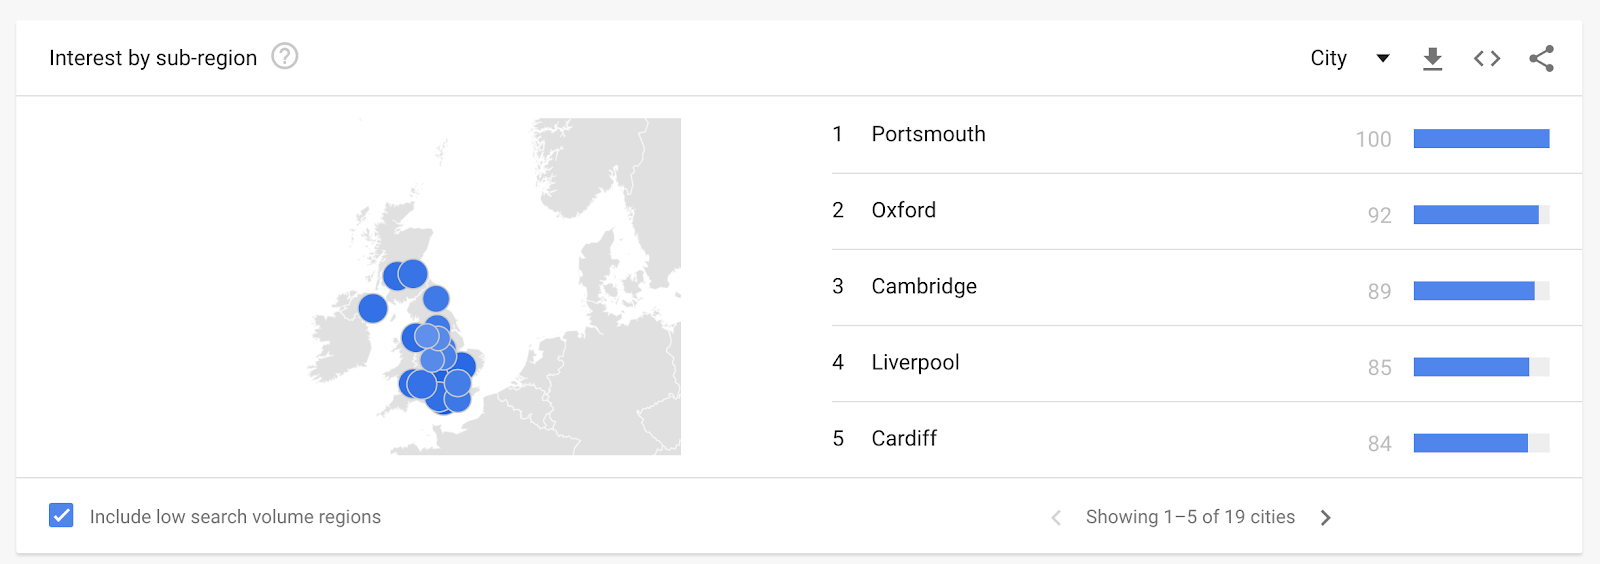 fake-news-uk-cities-google-trends